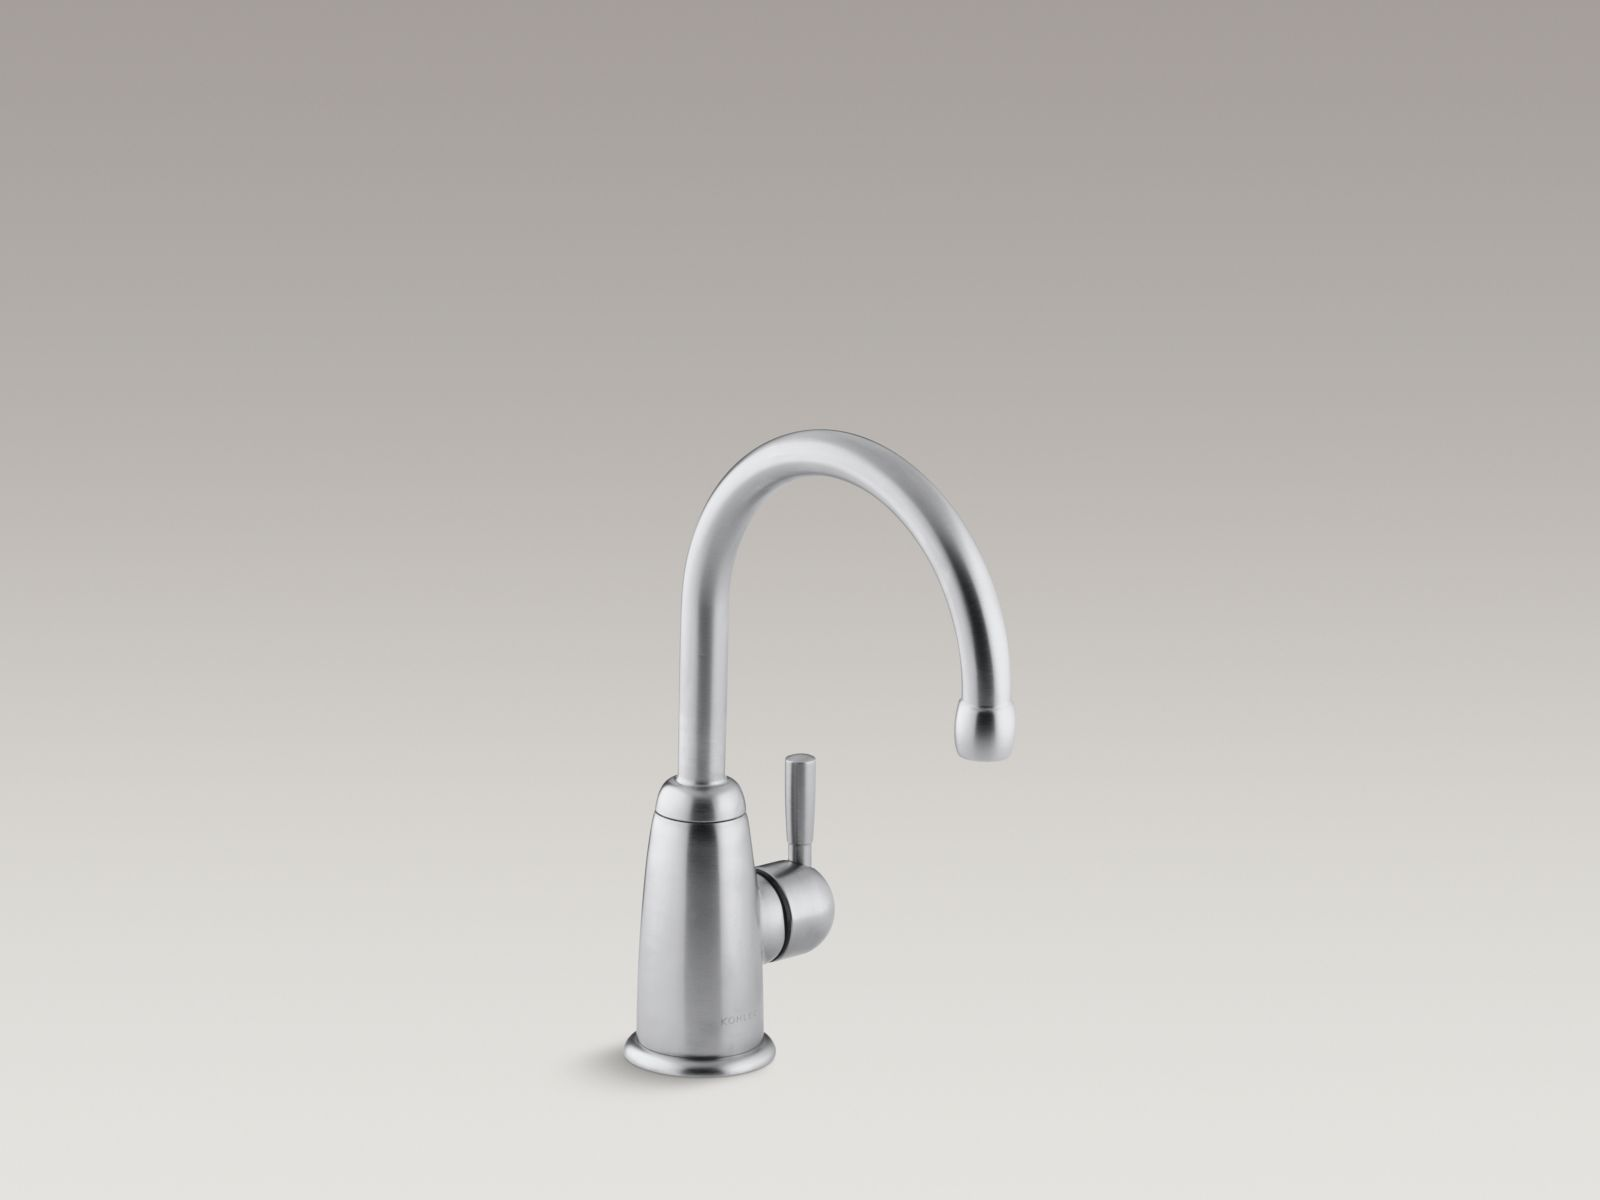 Kohler K-6665-G Wellspring Single-handle Beverage Faucet with Contemporary Design Brushed Chrome